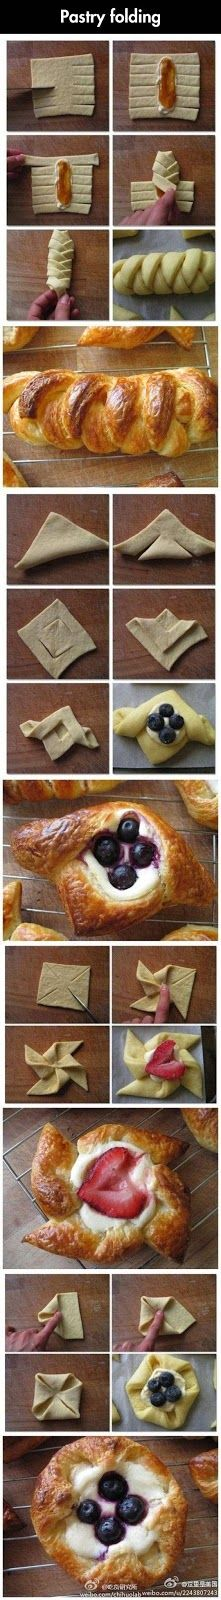 Folding Puff Pastries